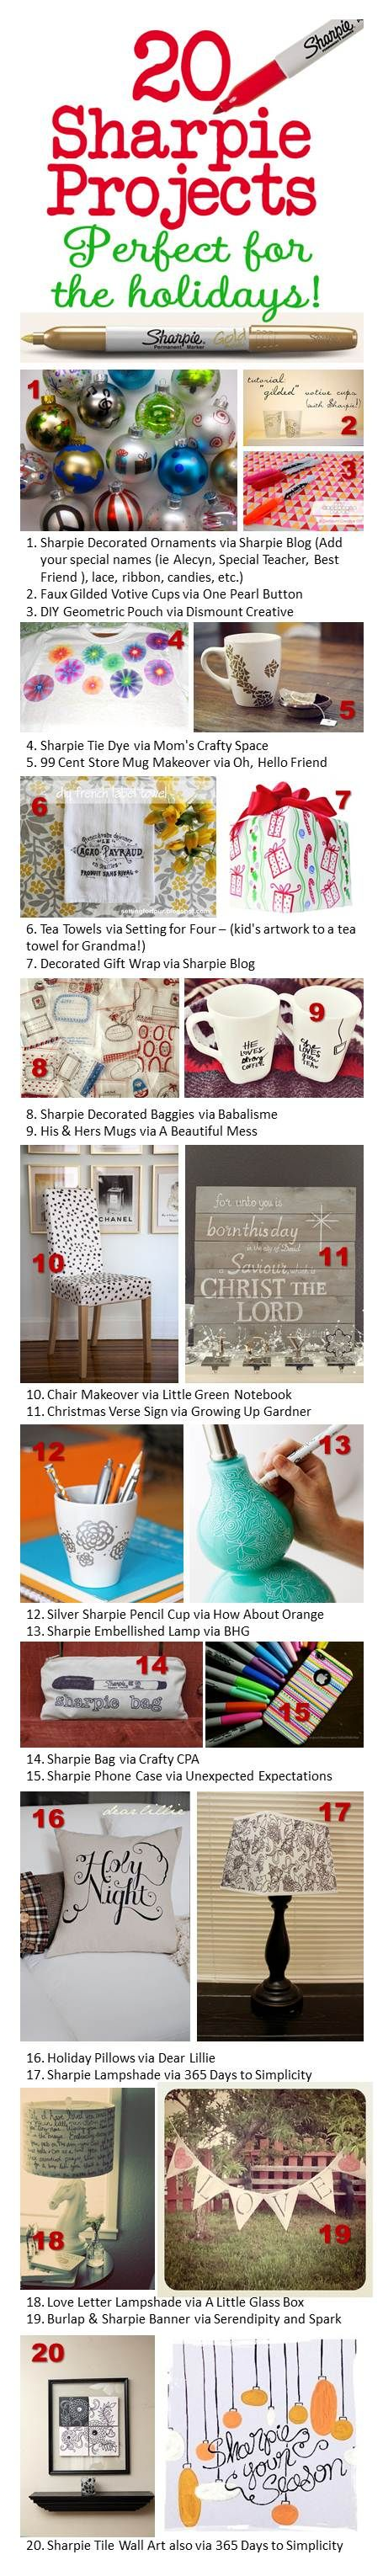 20 Sharpie Projects - Has links to the individual projects.  Great ideas!